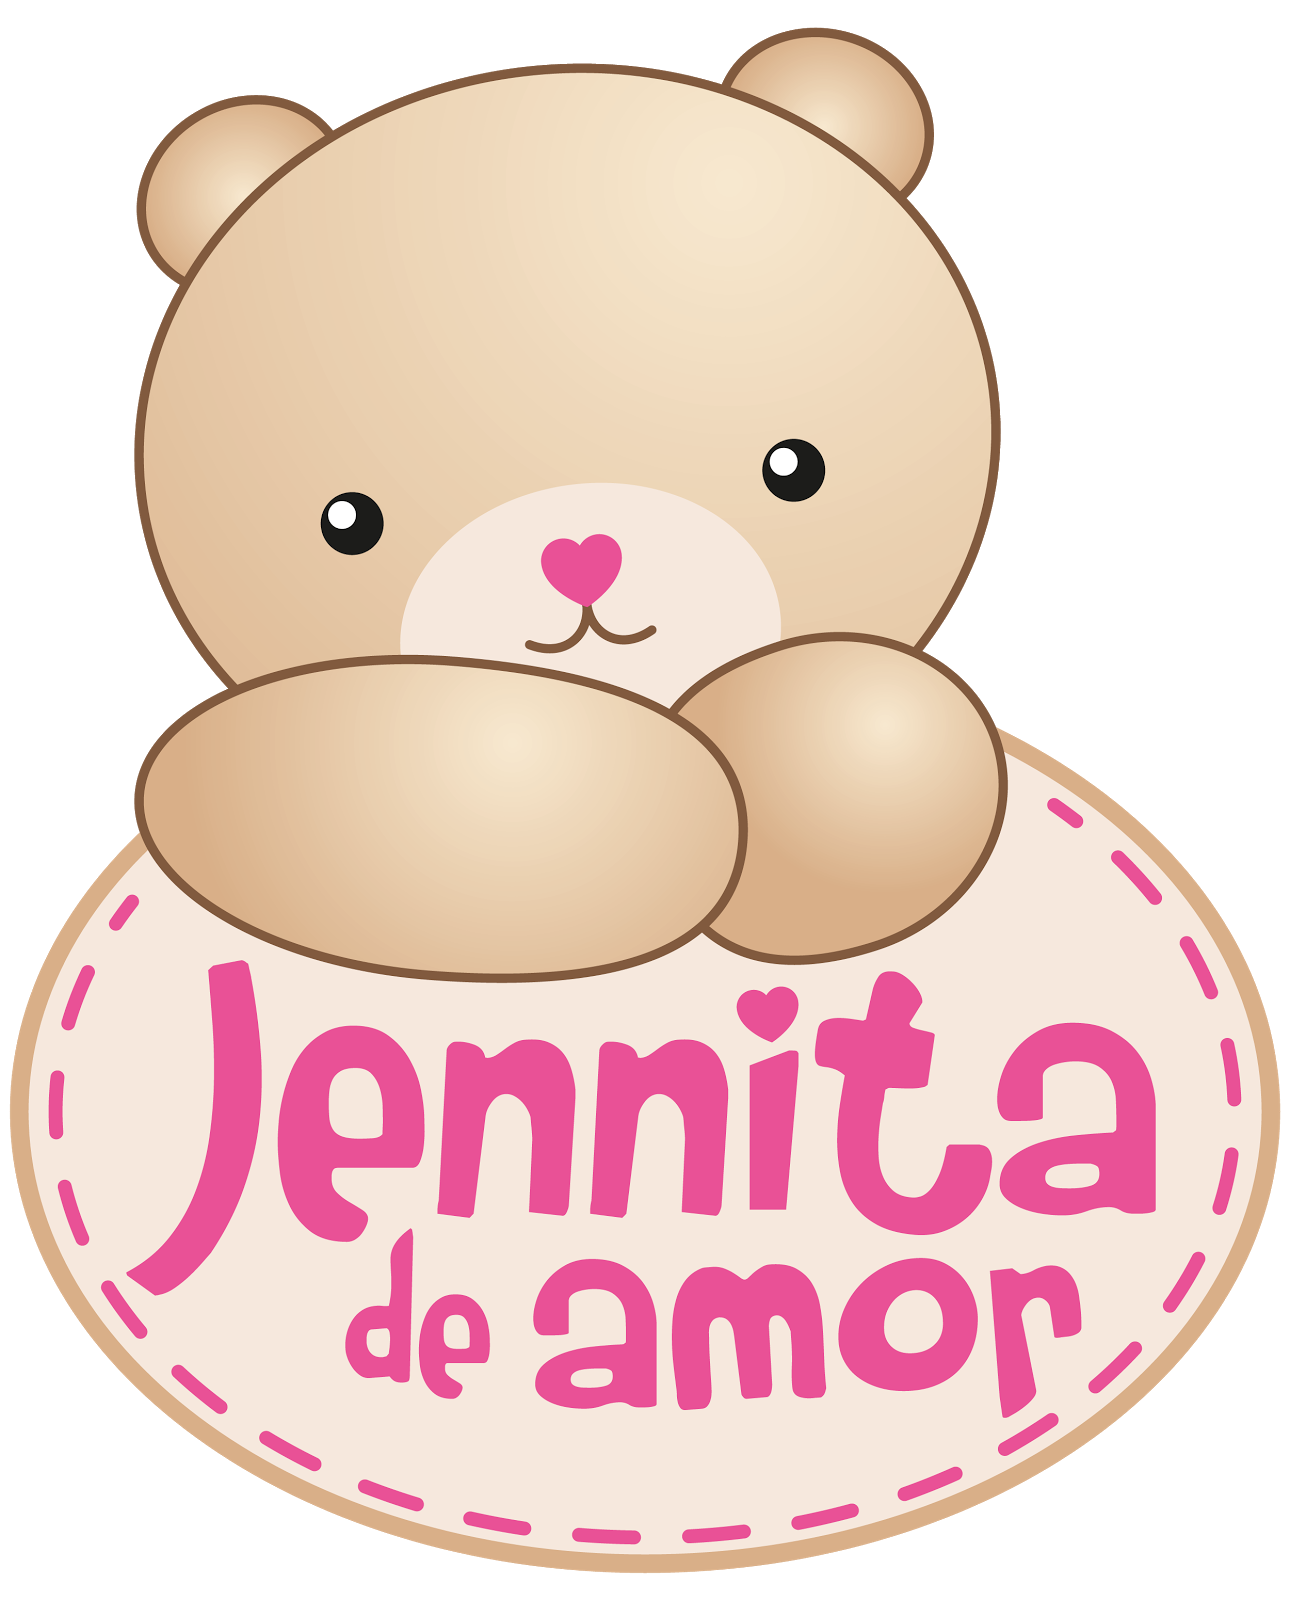 JENNITA DE AMOR MUEQUITOS